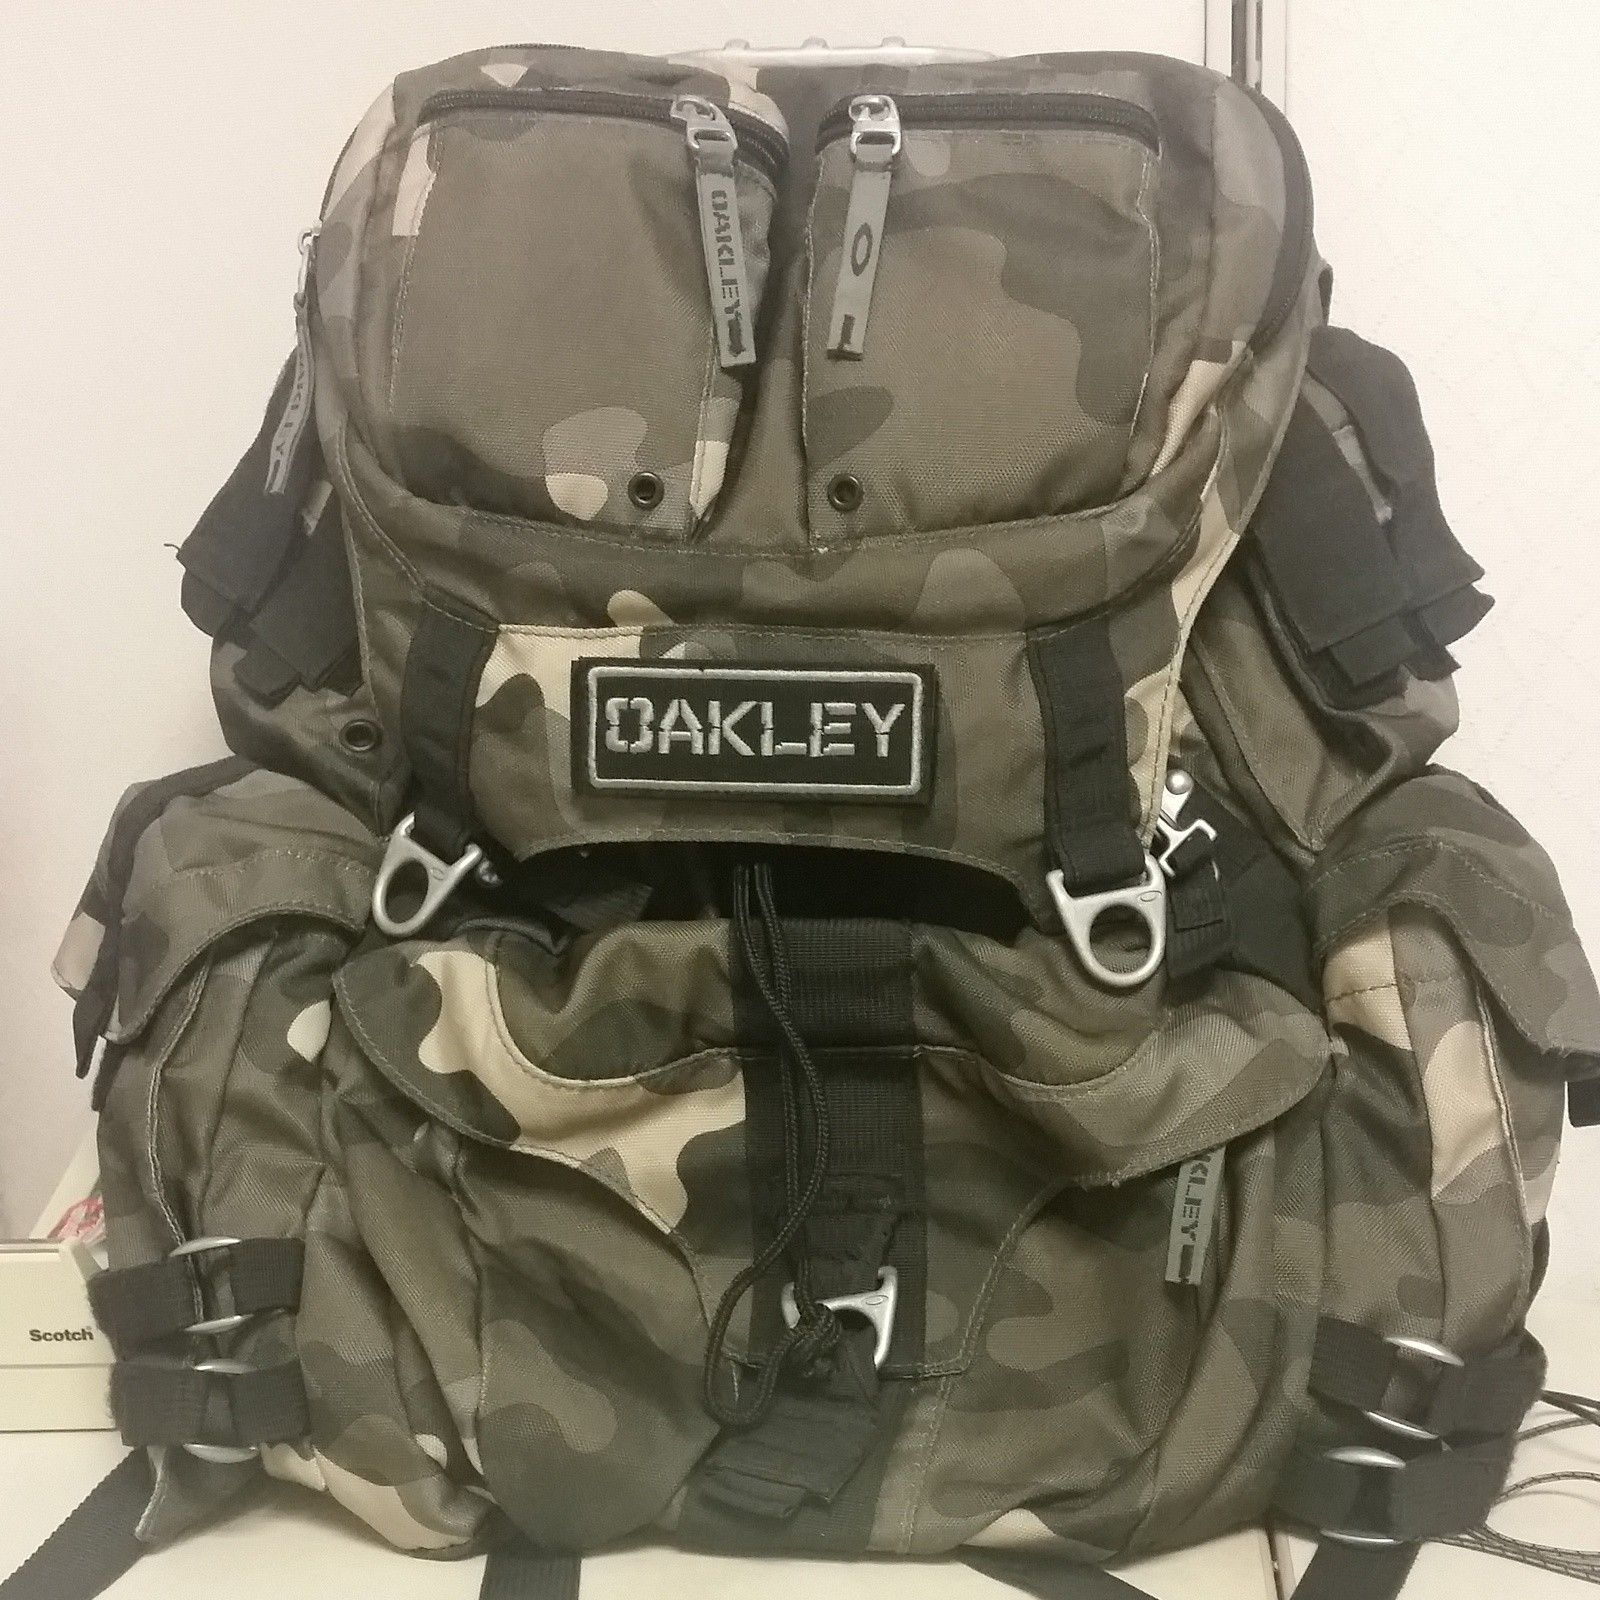 Oakley mechanism backpack - uploadfromtaptalk1419982653255.jpg